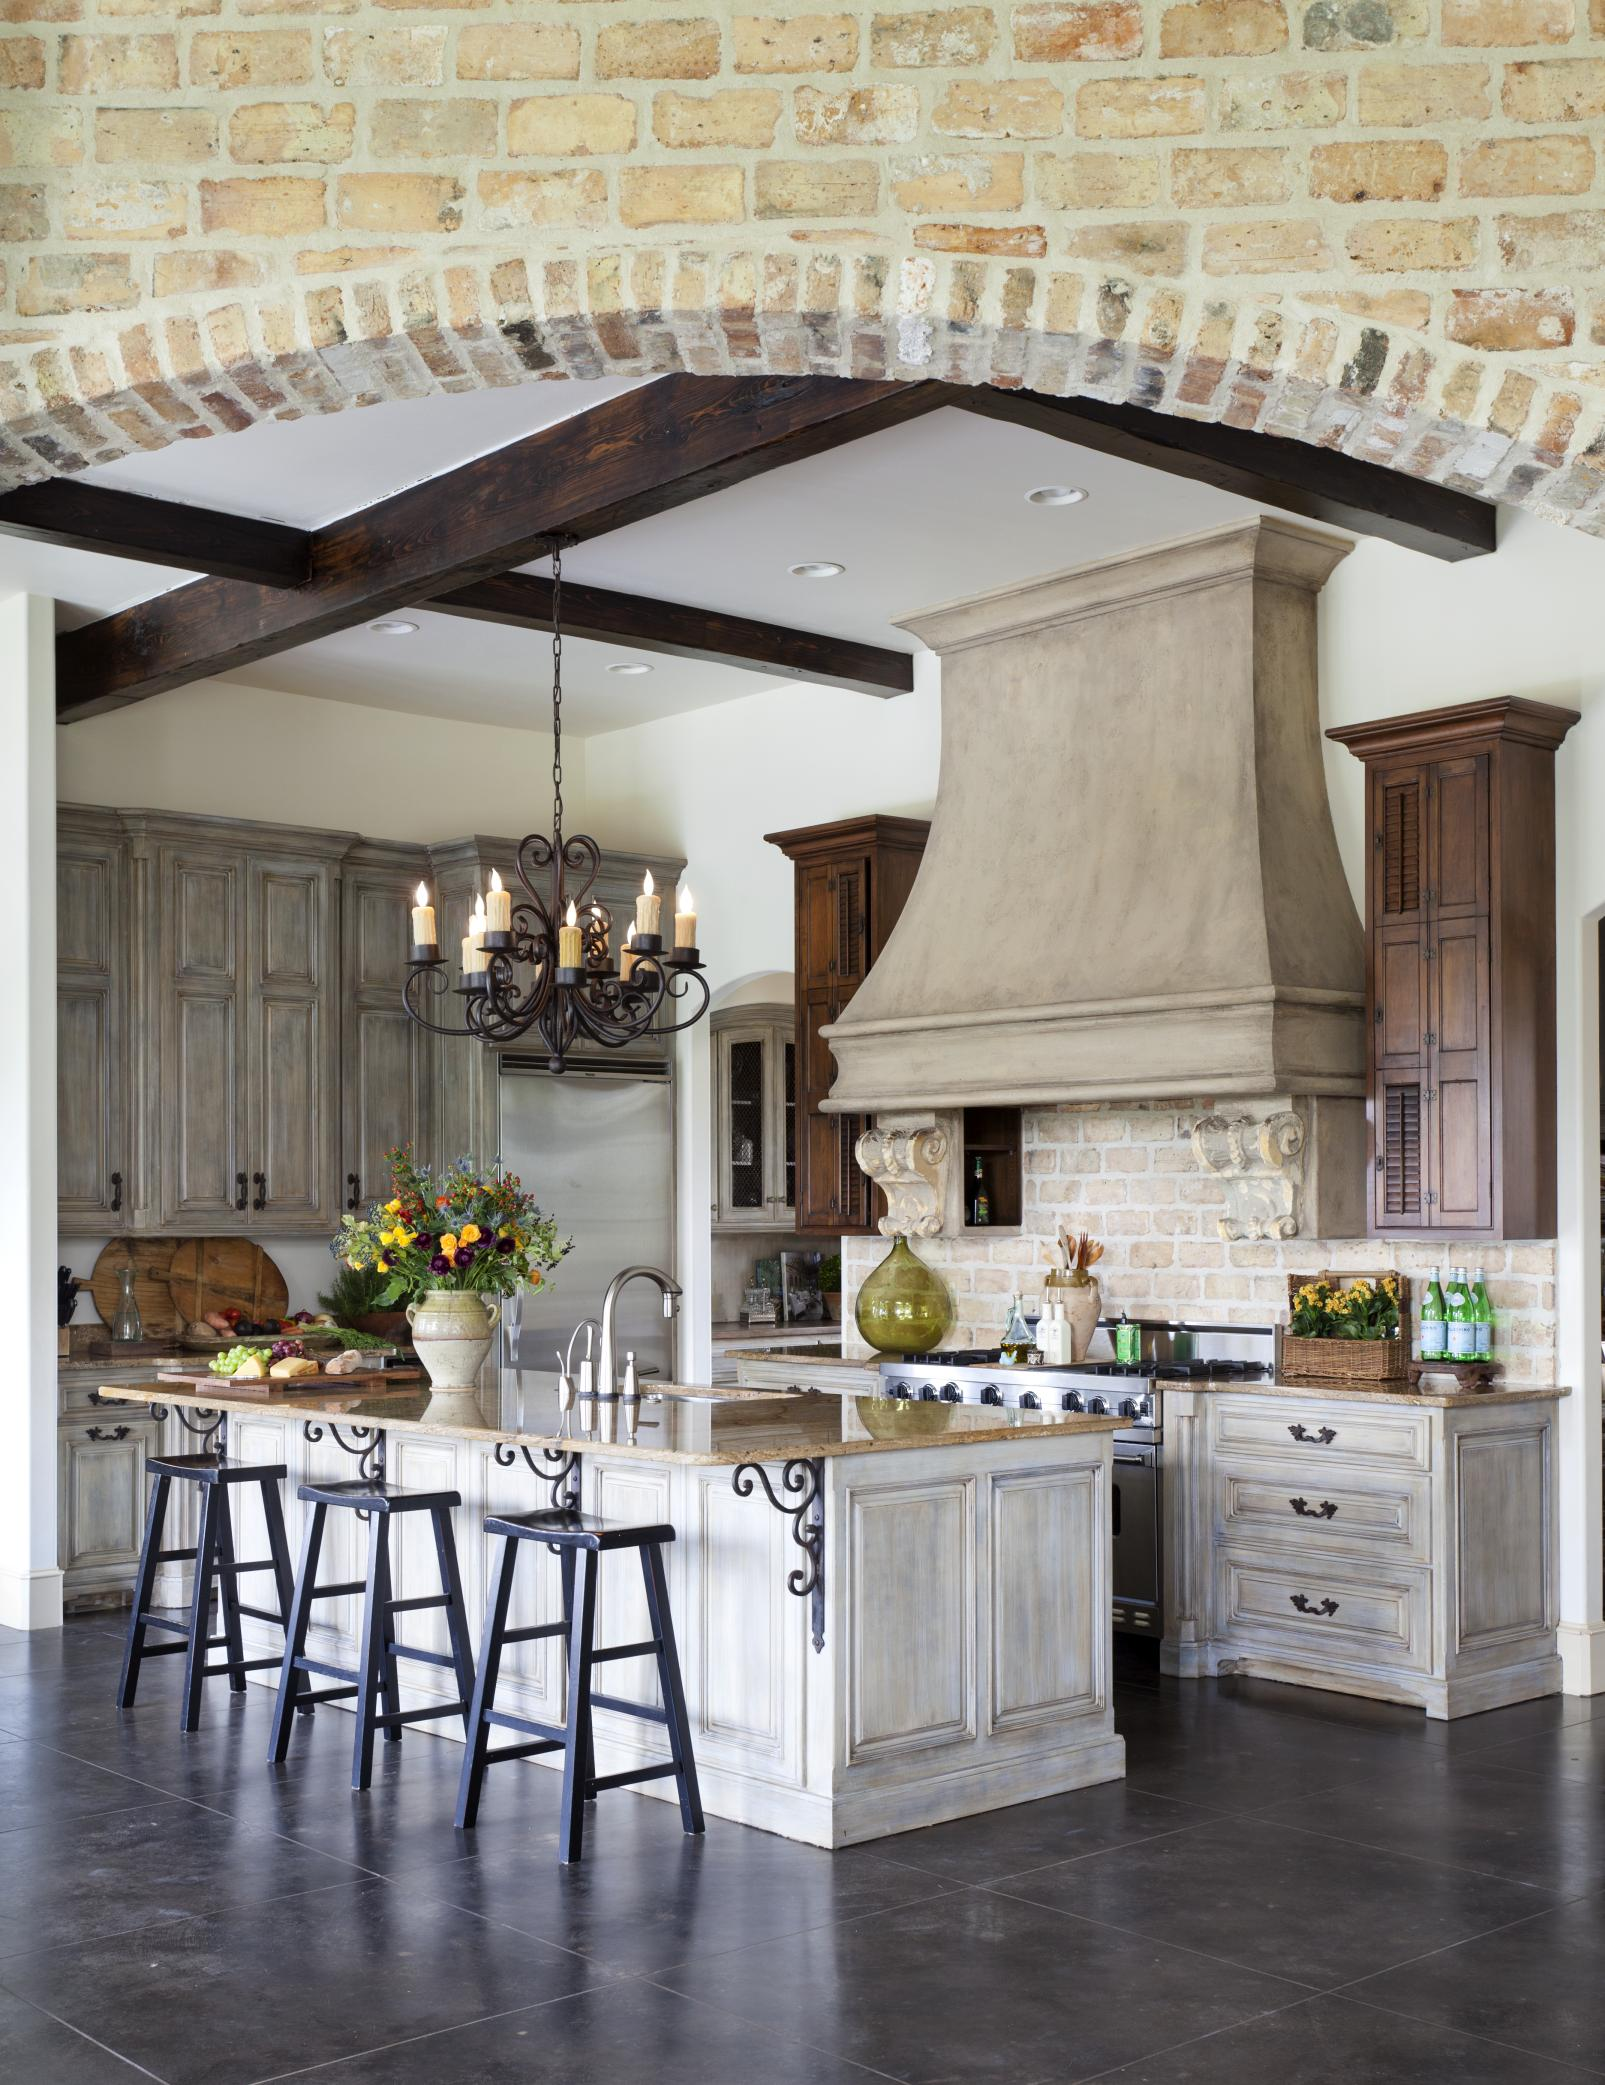 Cozy French Country Kitchen Designs For The Ones That Love ... on Rustic:1Gdhjdx6F3G= Farmhouse Kitchen  id=94266